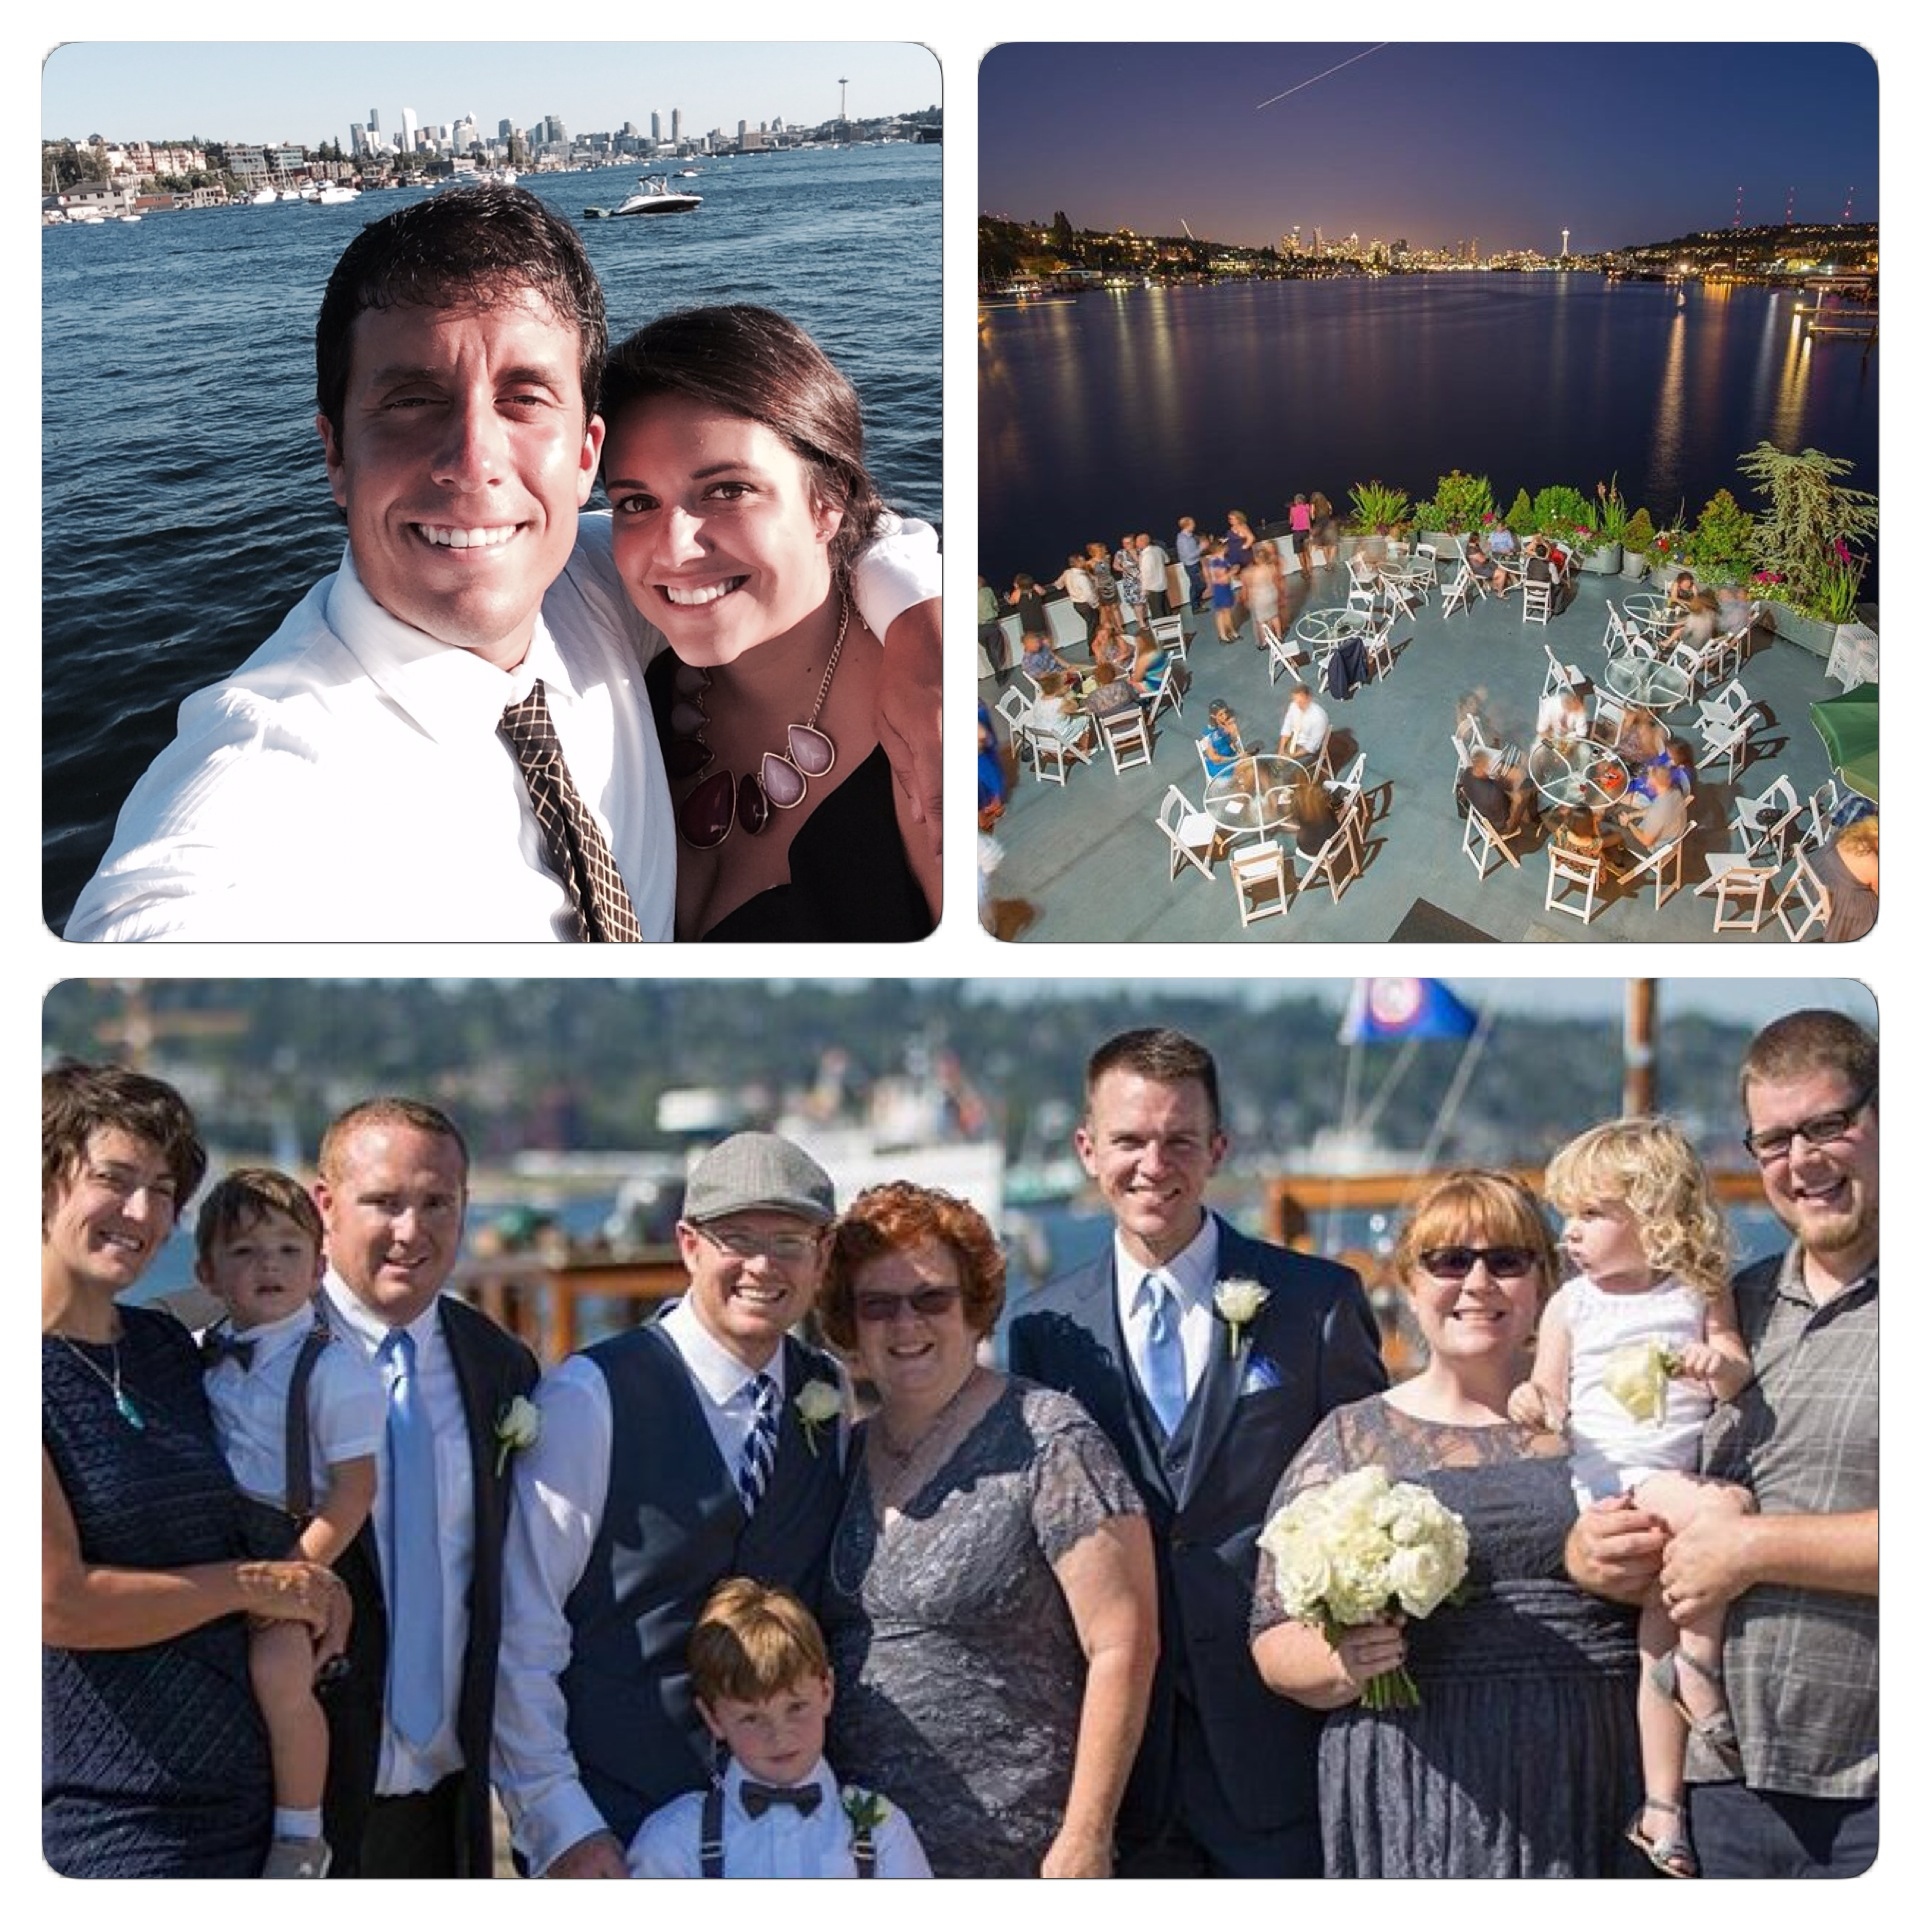 The top photo is of Sid and I with the gorgeous view from the ship as a background. The photo in the upper right hand corner is of the reception (courtesy of Kenny and Steve's photographer). The bottom photo is of the wedding party (courtesy of Kenny and Steve's photographer).